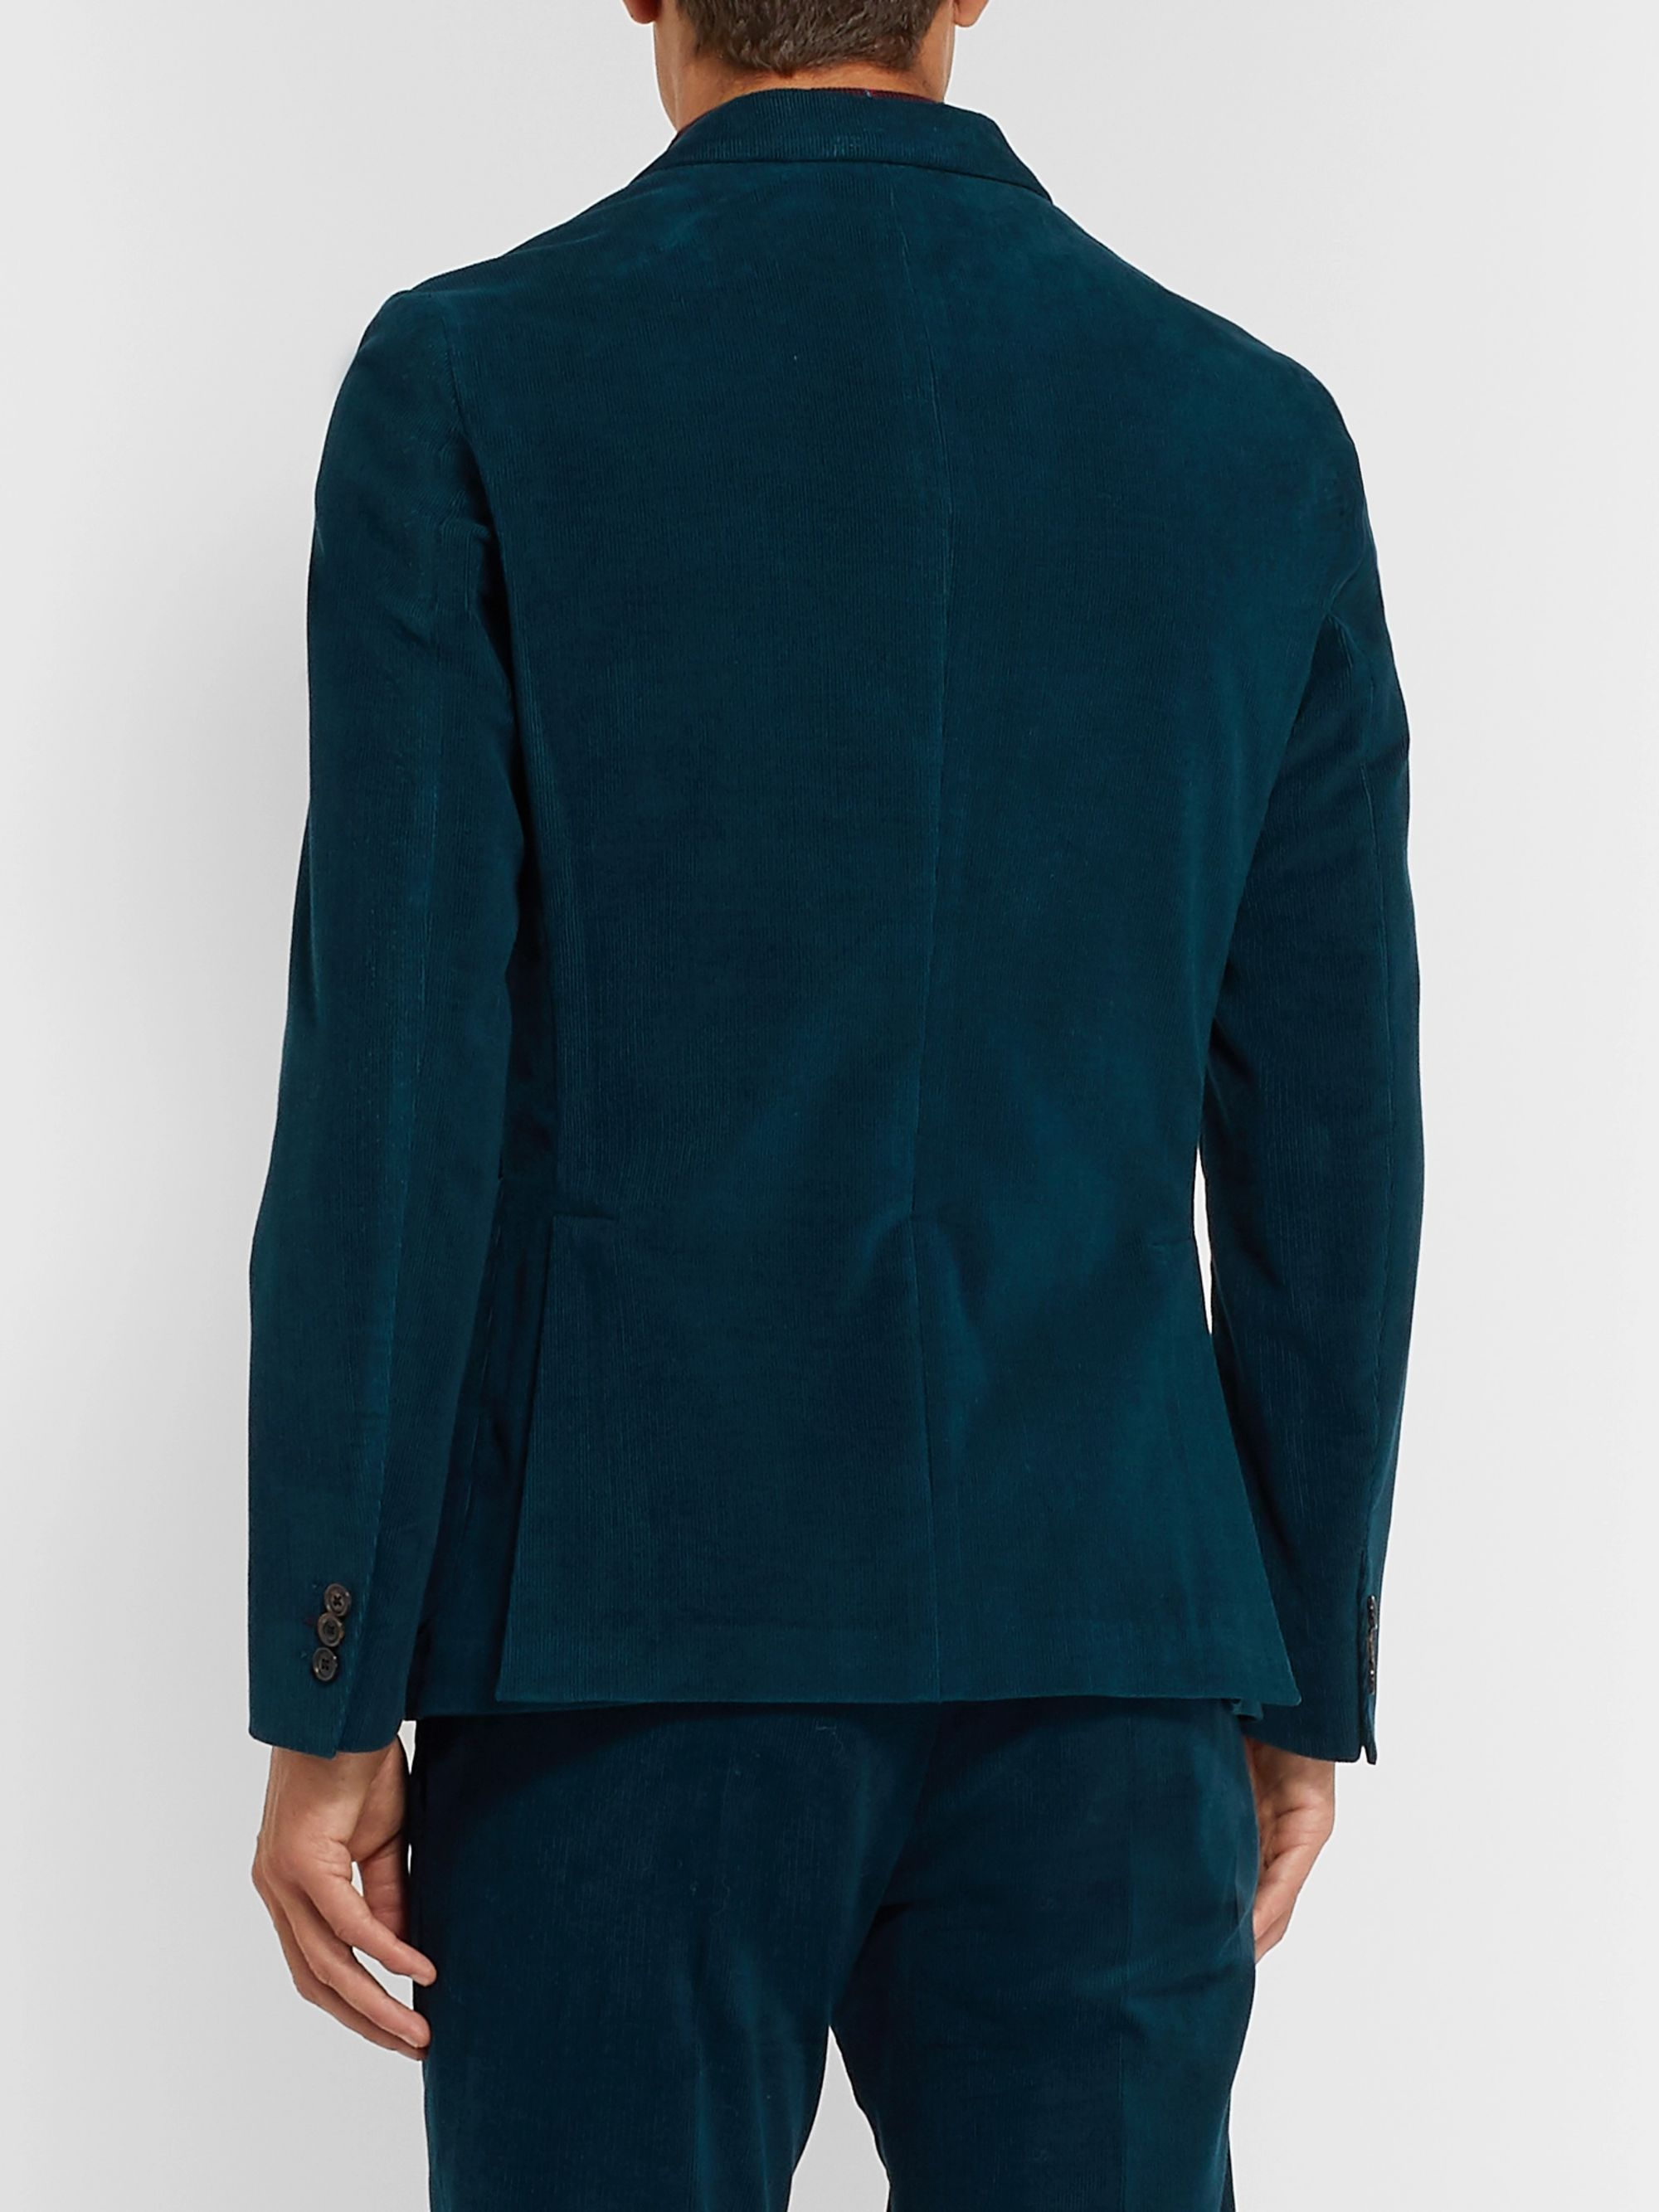 Paul Smith Cotton-Corduroy Suit Jacket